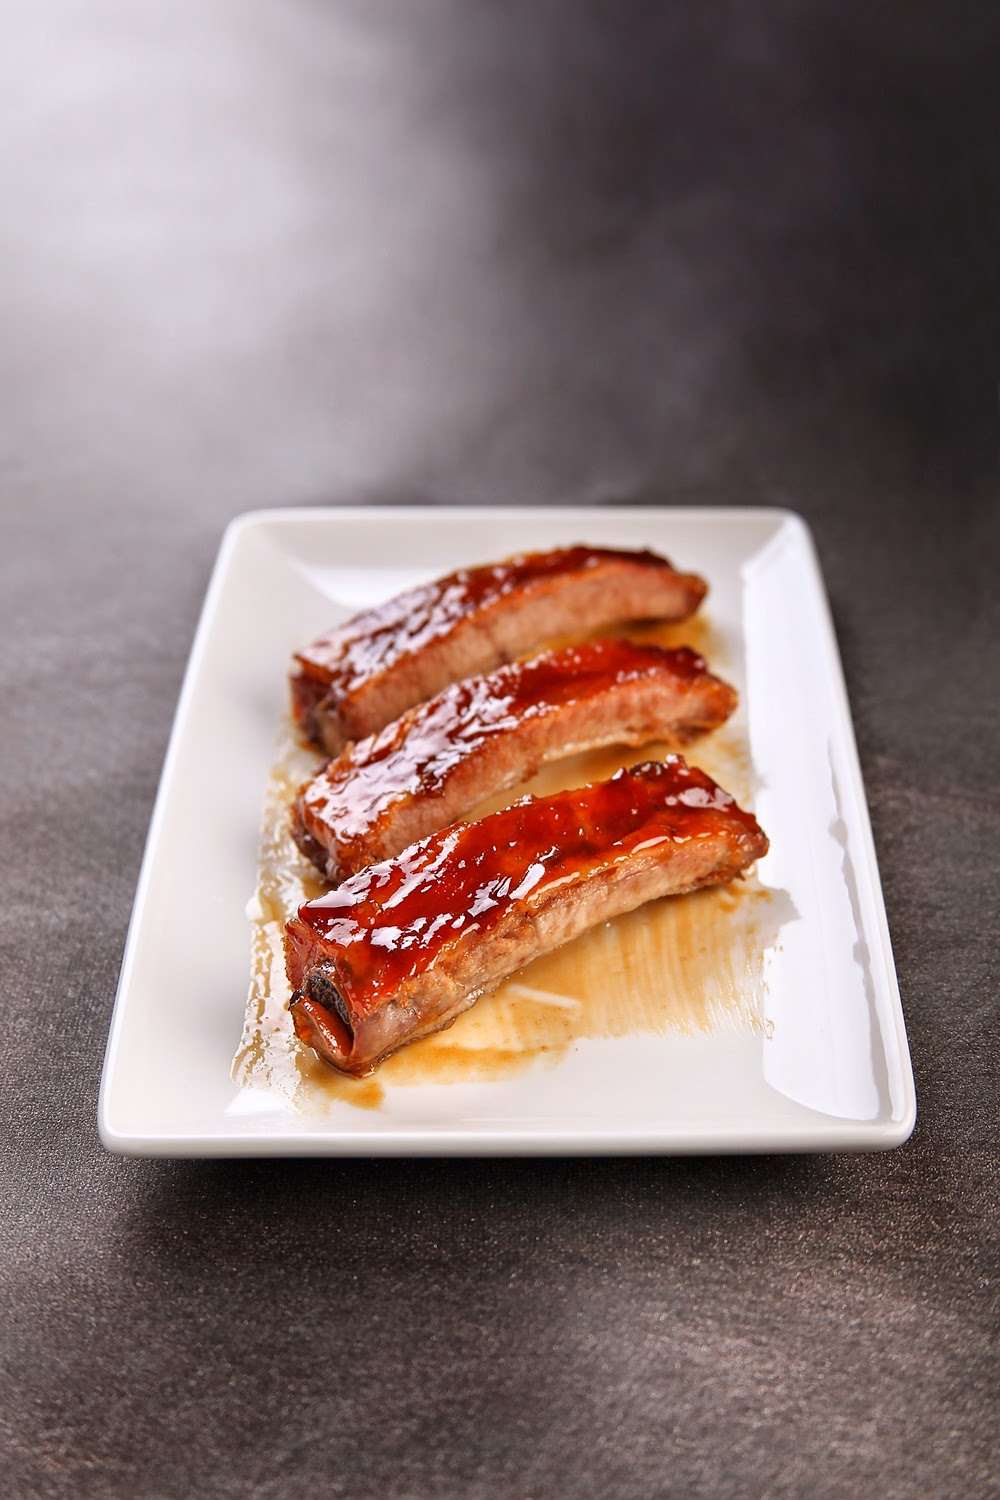 SIFU - Caramelised Roasted Ribs